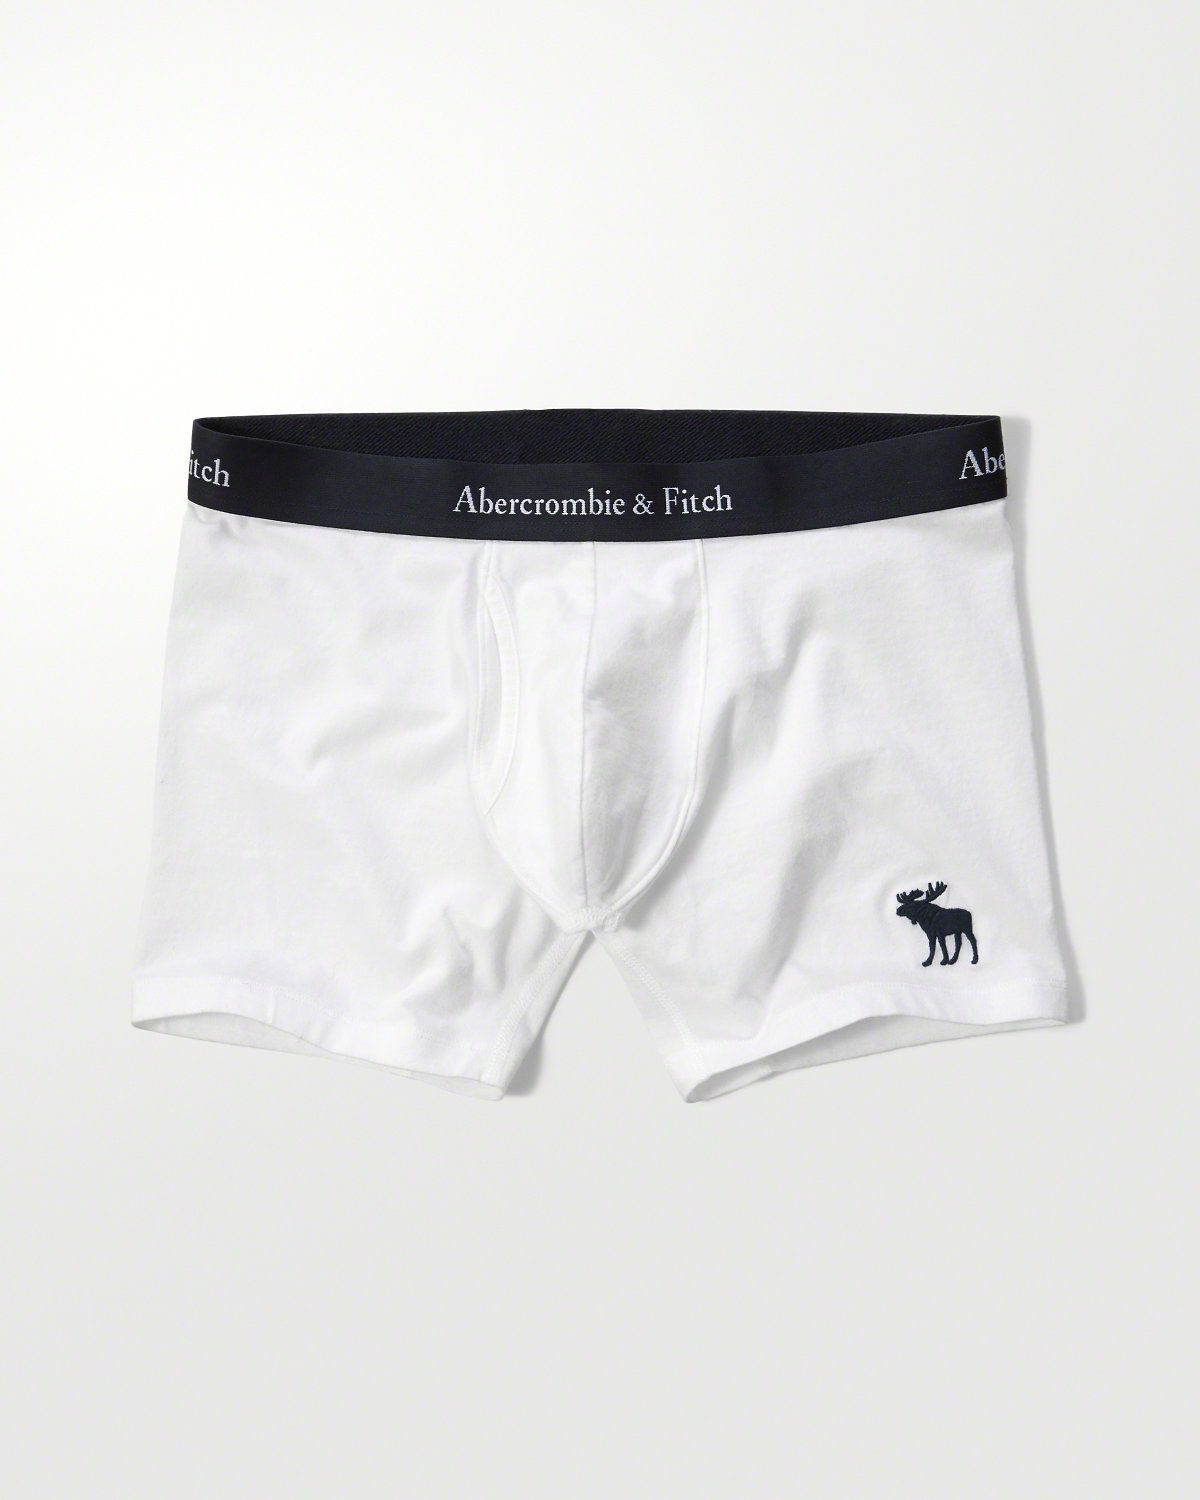 Mens Underwear & Socks | Abercrombie & Fitch | Men's Fashion ...